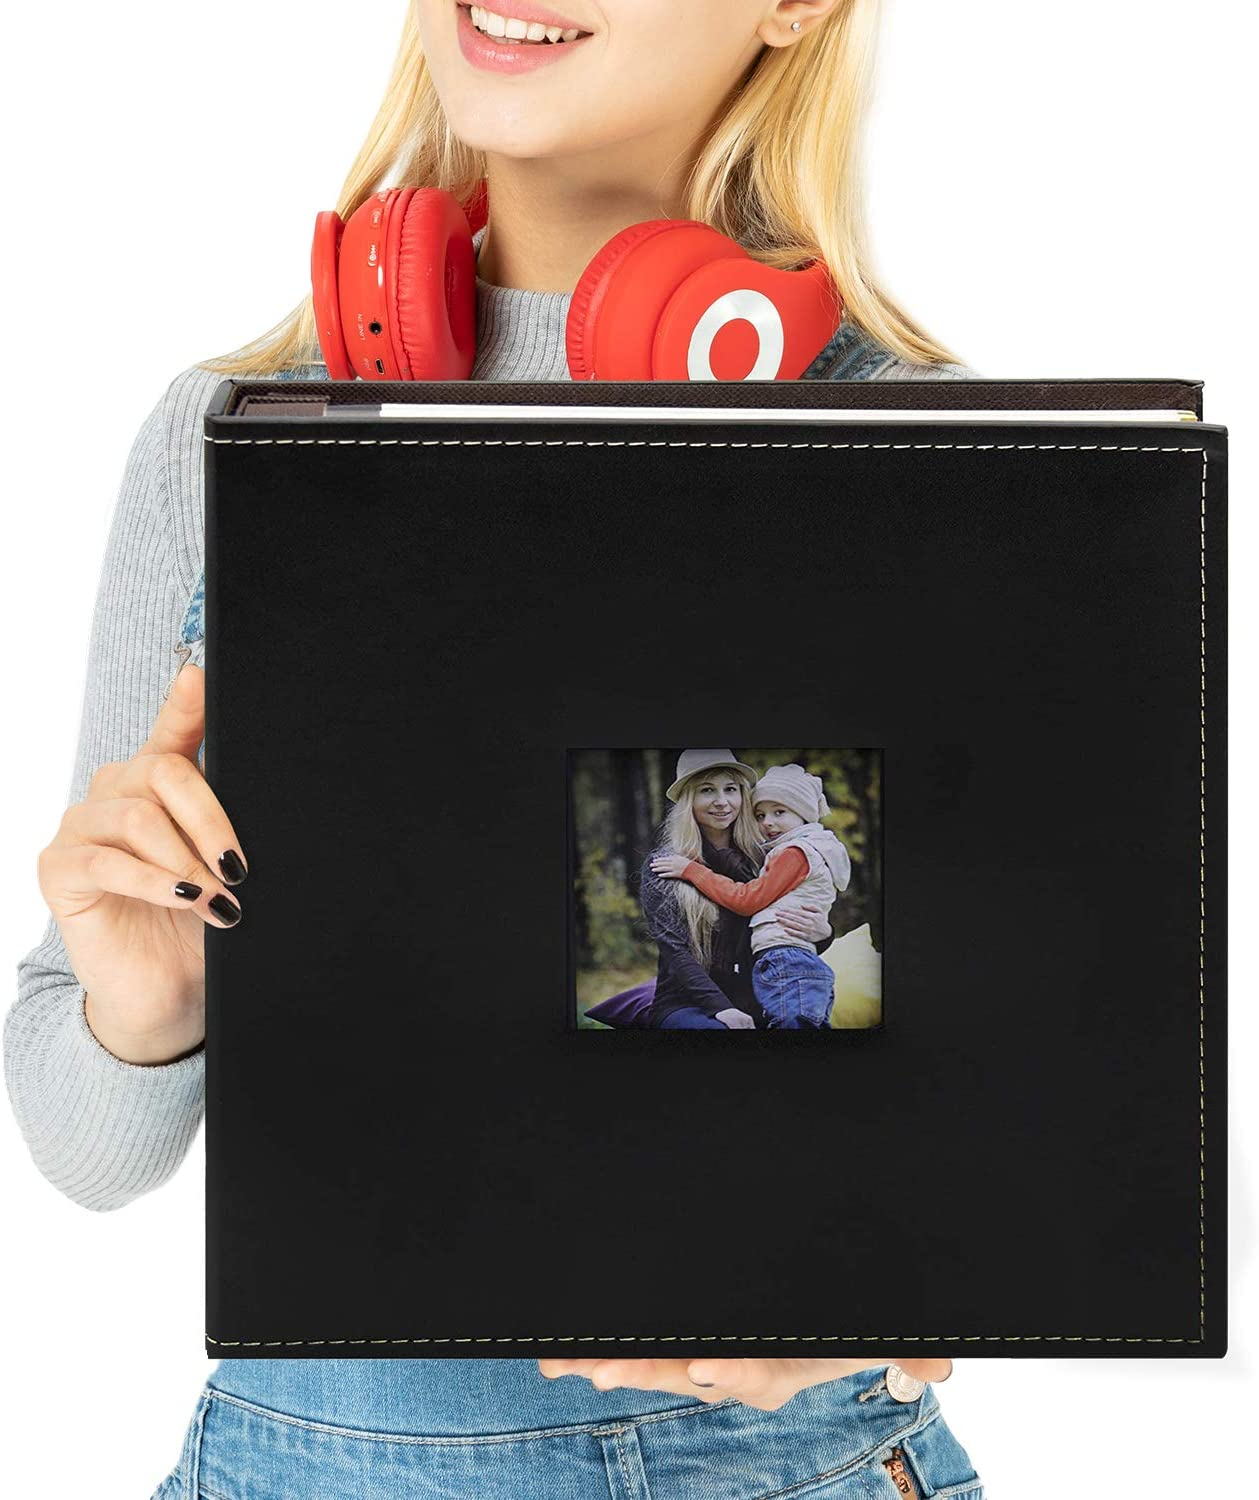 Golden State Art, Self Adhesive Magnetic Photo Album, Self-Stick Albums Holds 3X5, 4X6, 5X7, 6X8, 8X10 DIY Photos-10.6 x 11.4 Inch (Leather Black, 40 Pages, with Front Cover Opening)